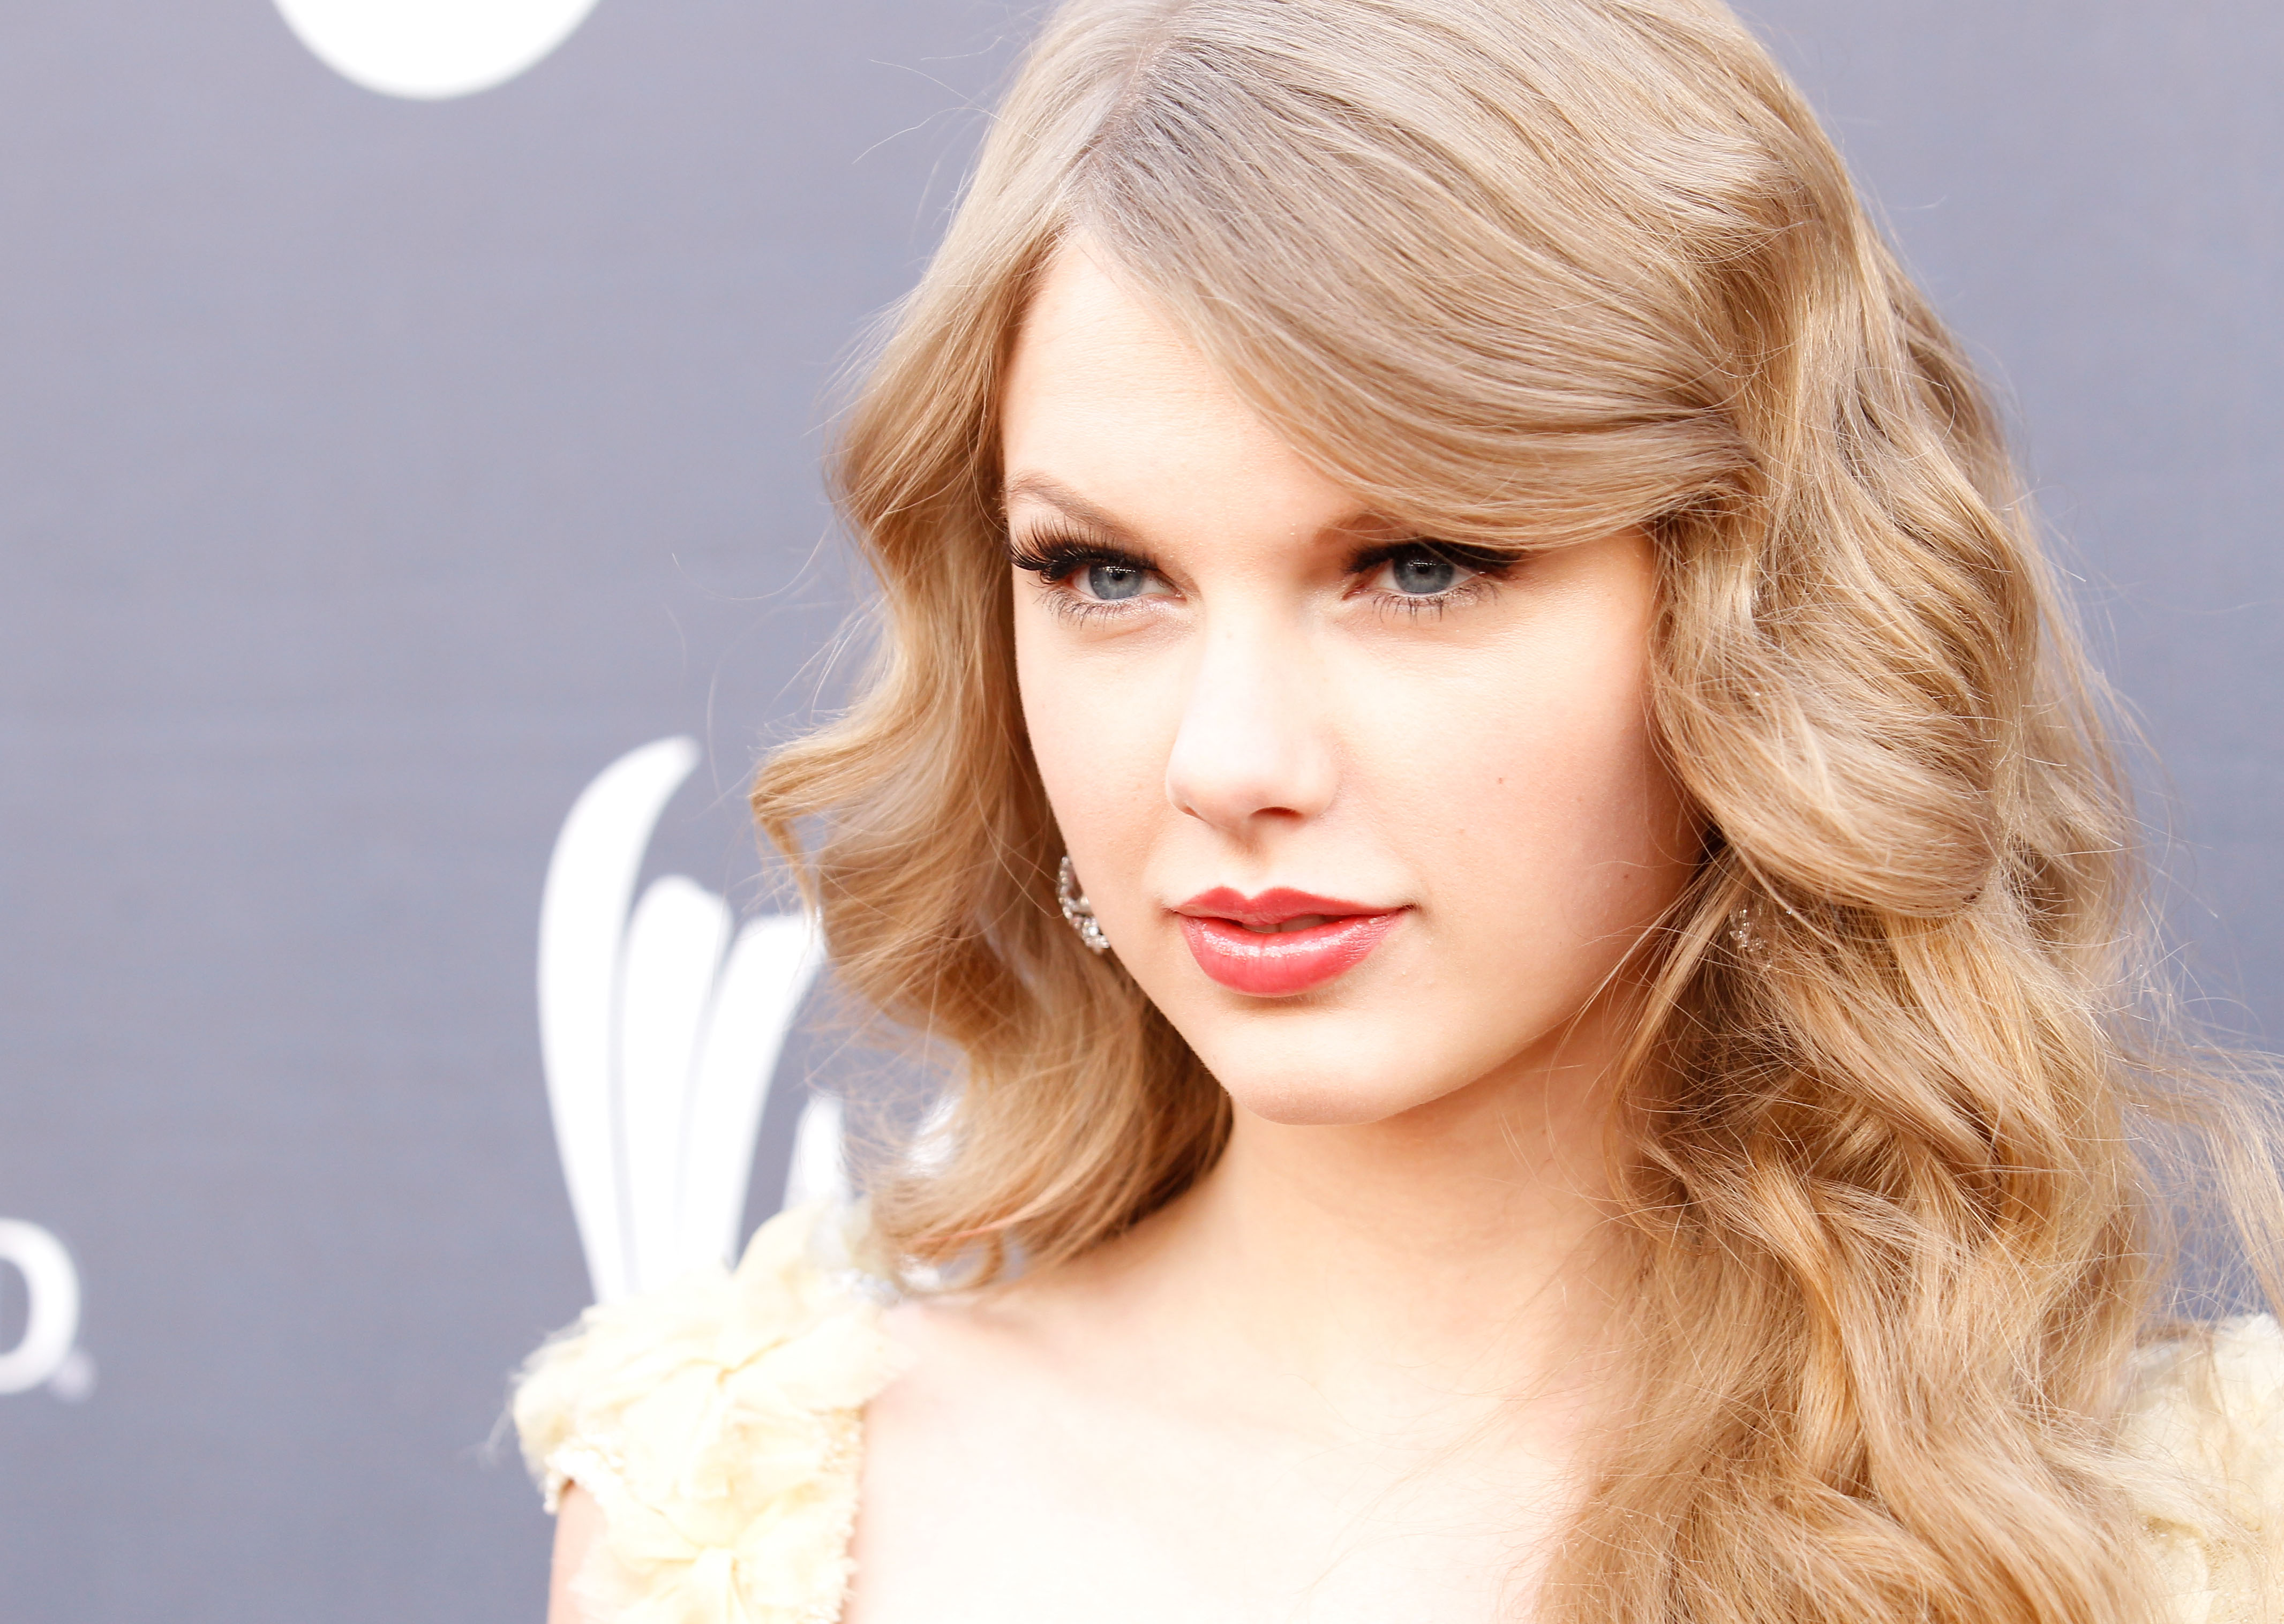 Taylor Swift 4k Ultra HD Wallpaper And Background Image